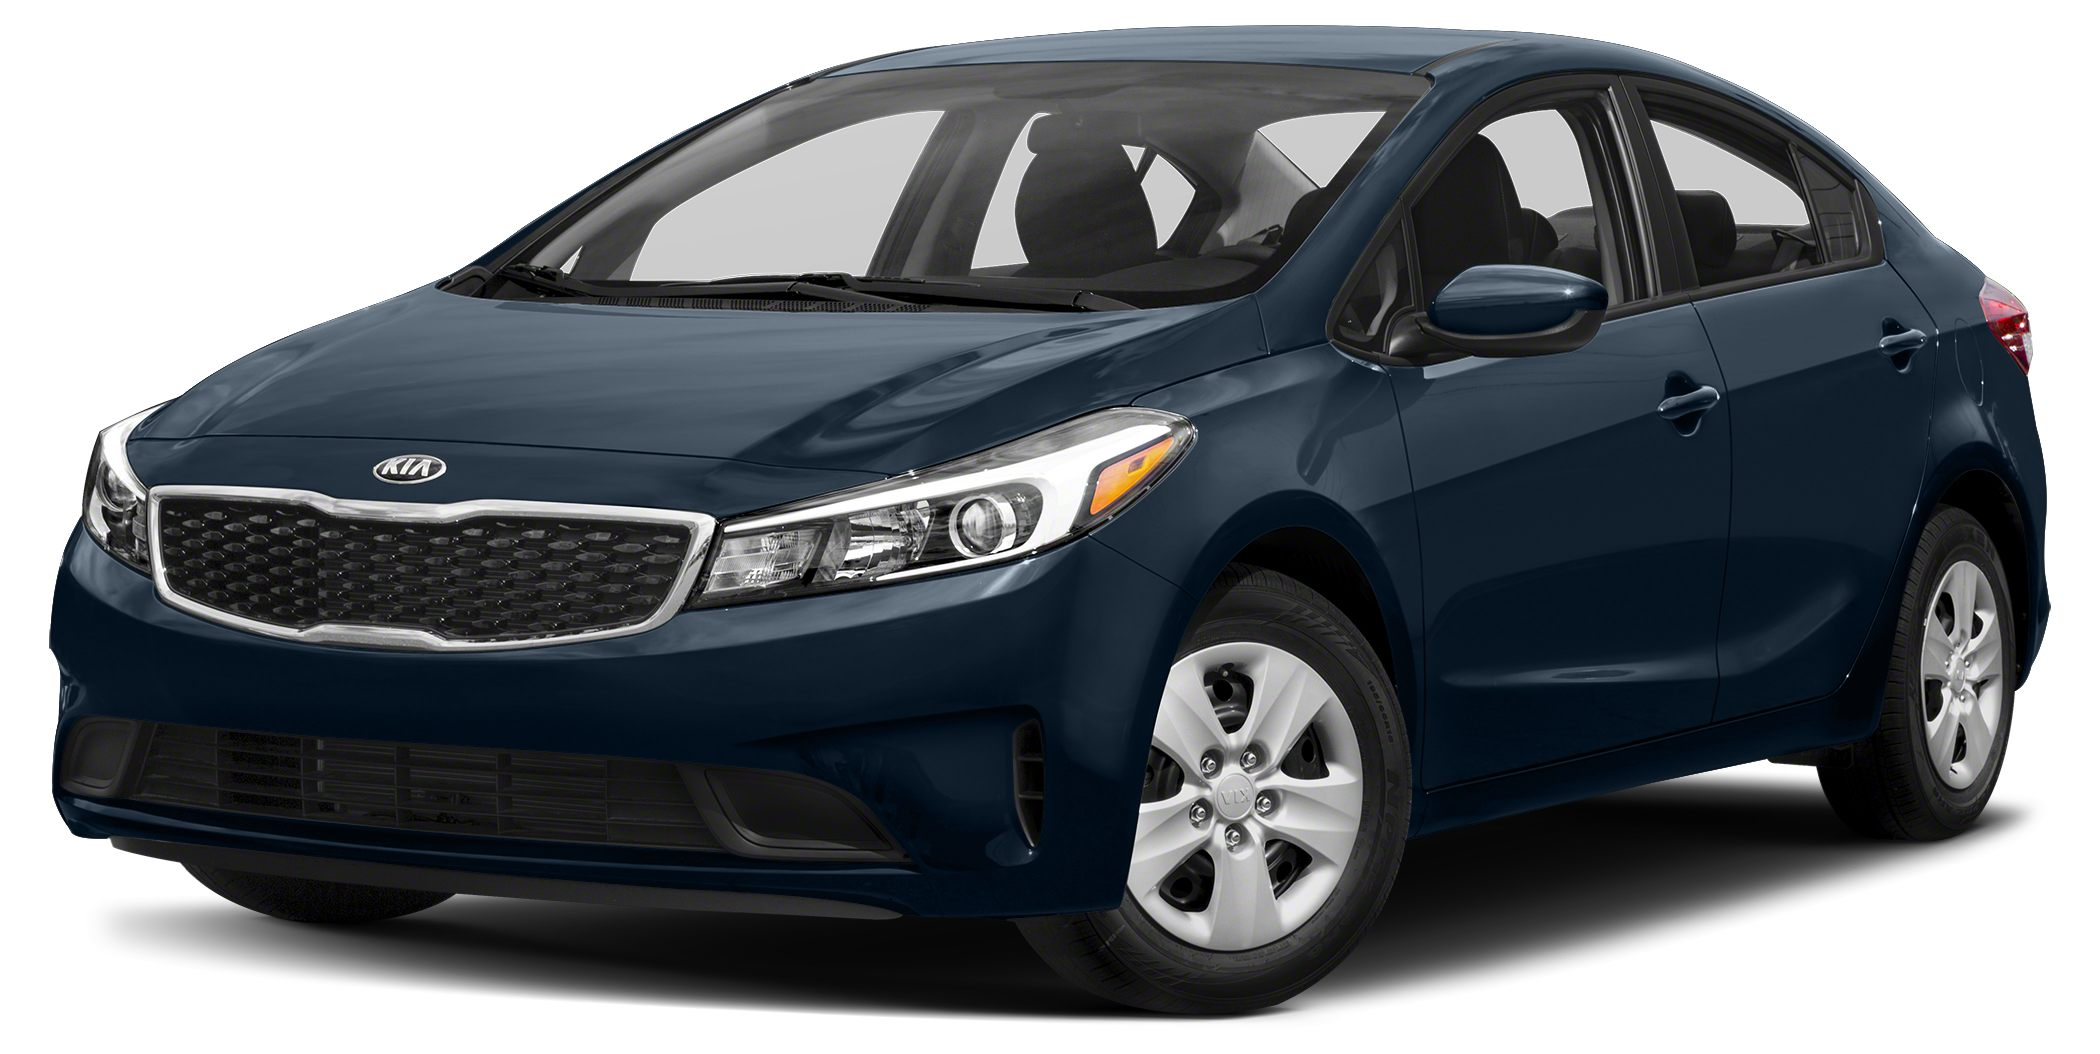 2017 Kia Forte LX Miles 9Color Deep Sea Blue Stock K16312 VIN 3KPFK4A70HE027841